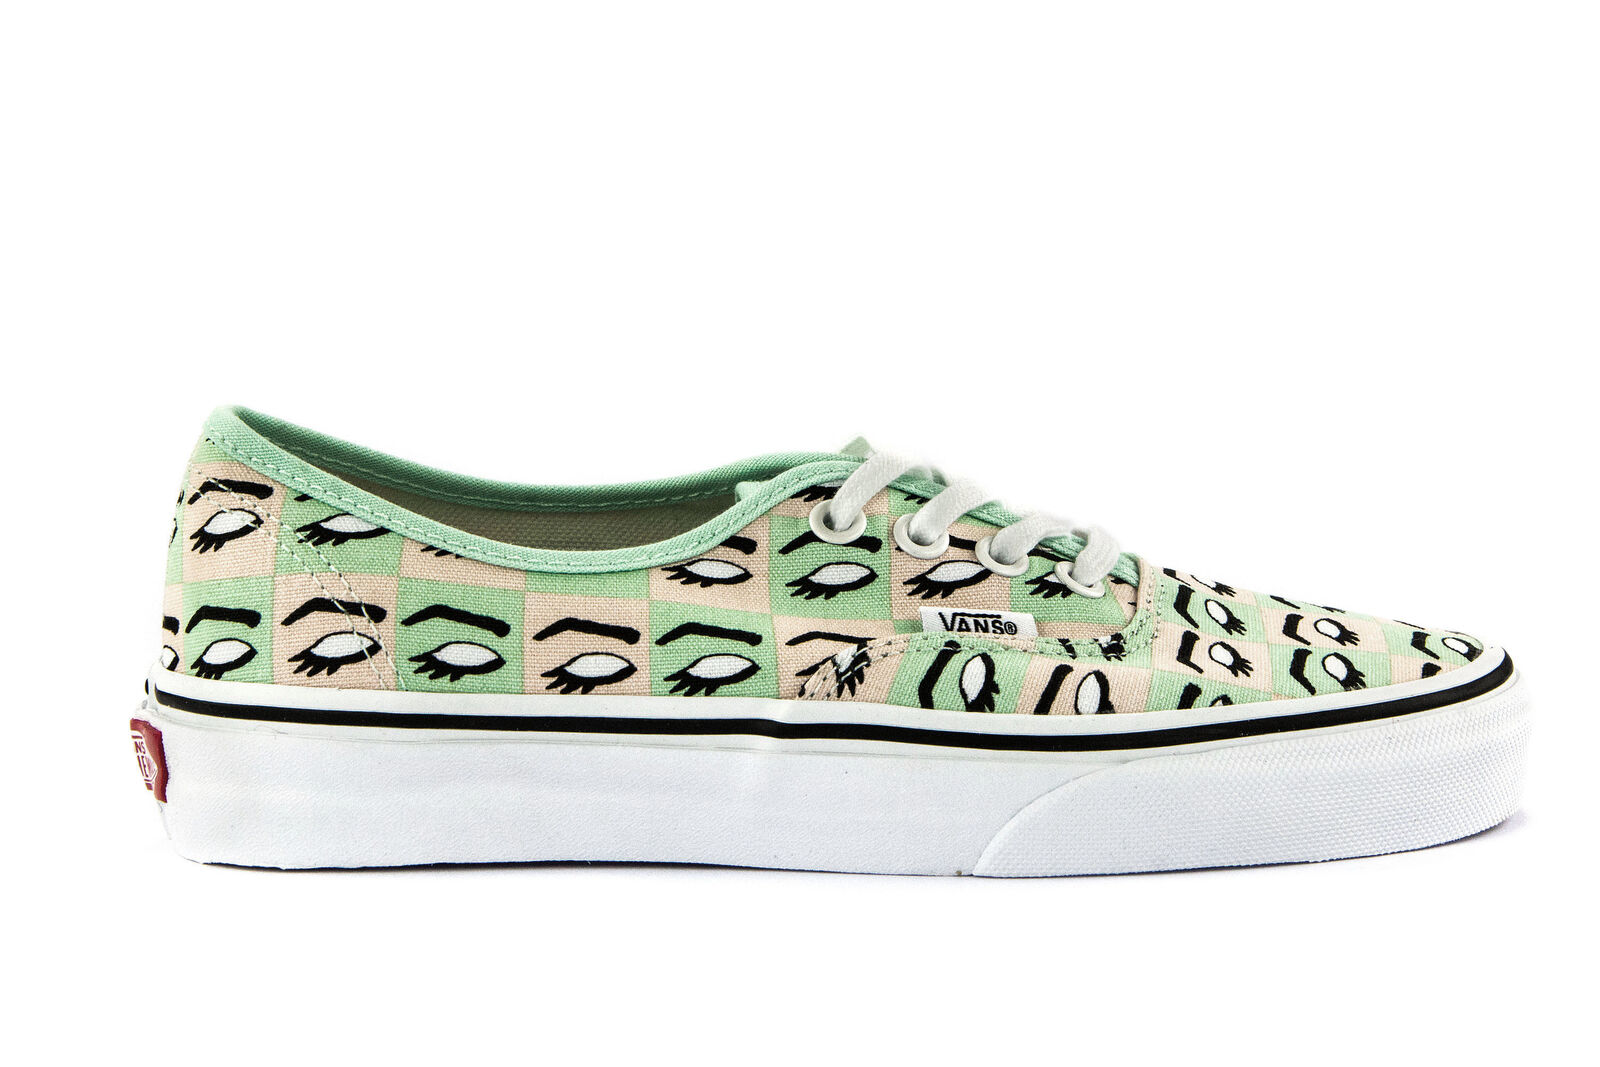 VANS Womens Shoes Lace-Up Sneakers AUTHENTIC (KENDRA DANDY) White Printed Canvas